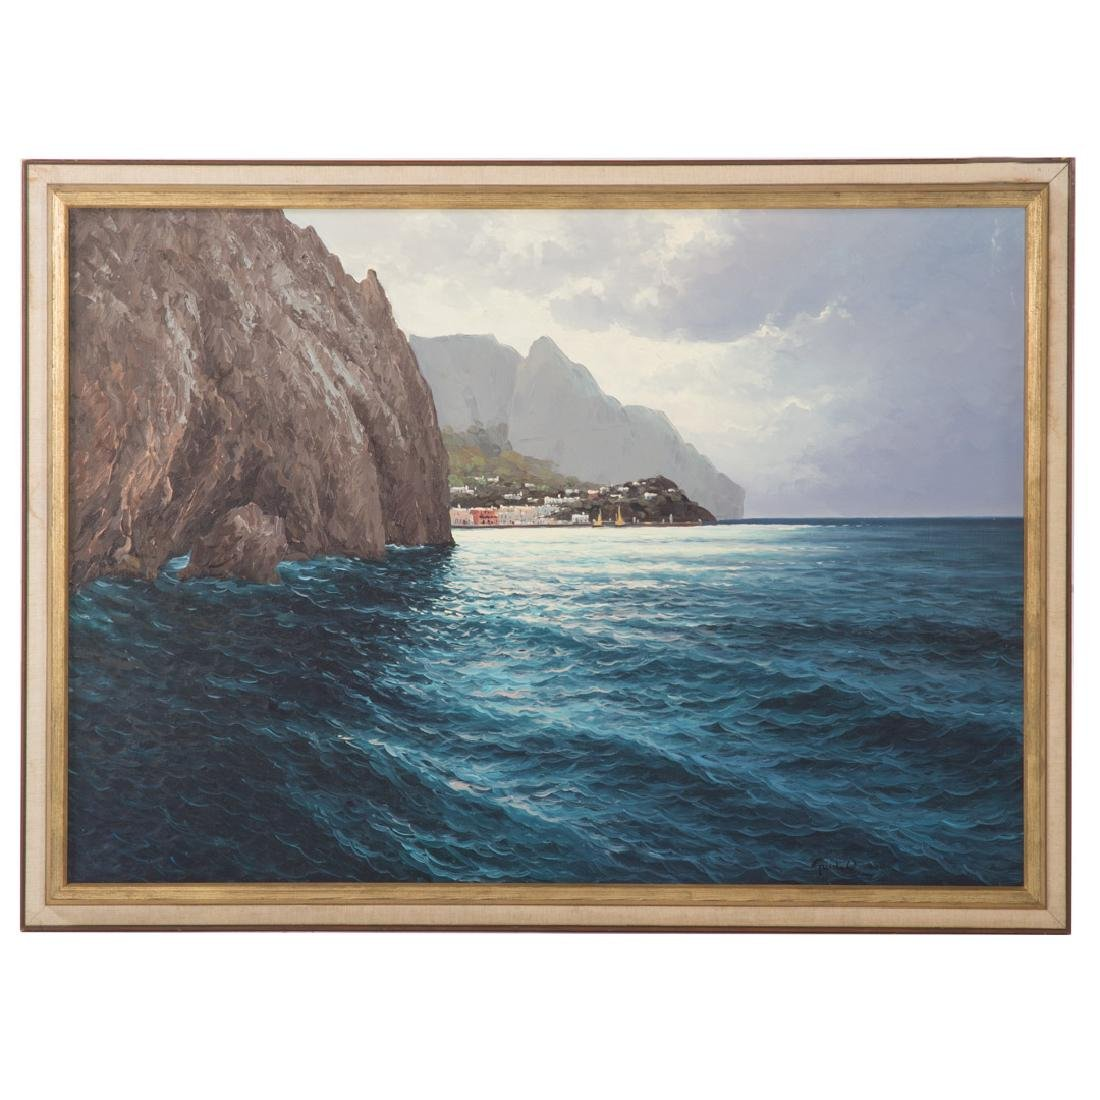 Guido Ordierna. Capri, oil on canvas